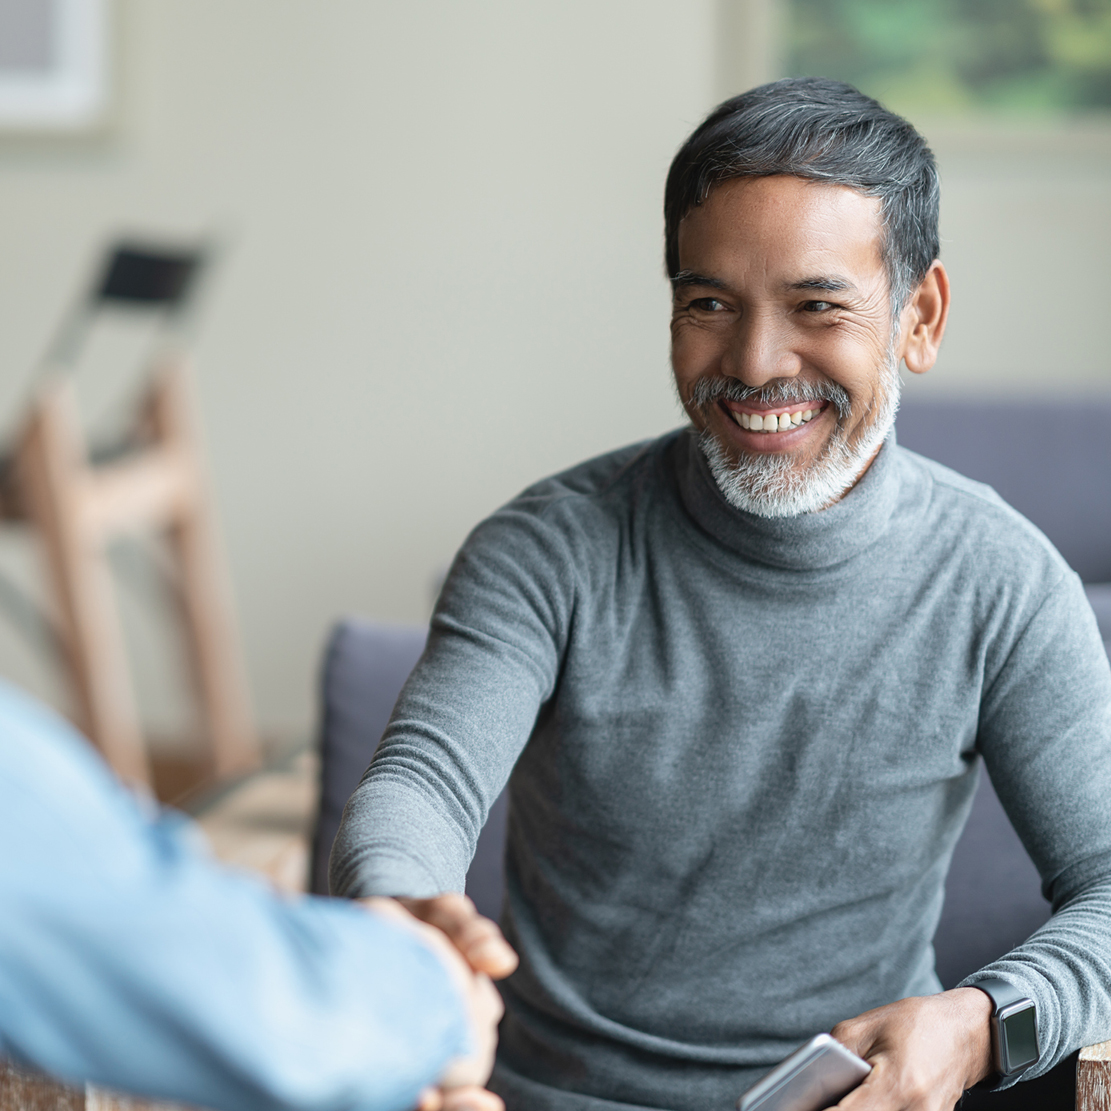 Money in Motion: 6 Situations Where a Financial Advisor Can Help